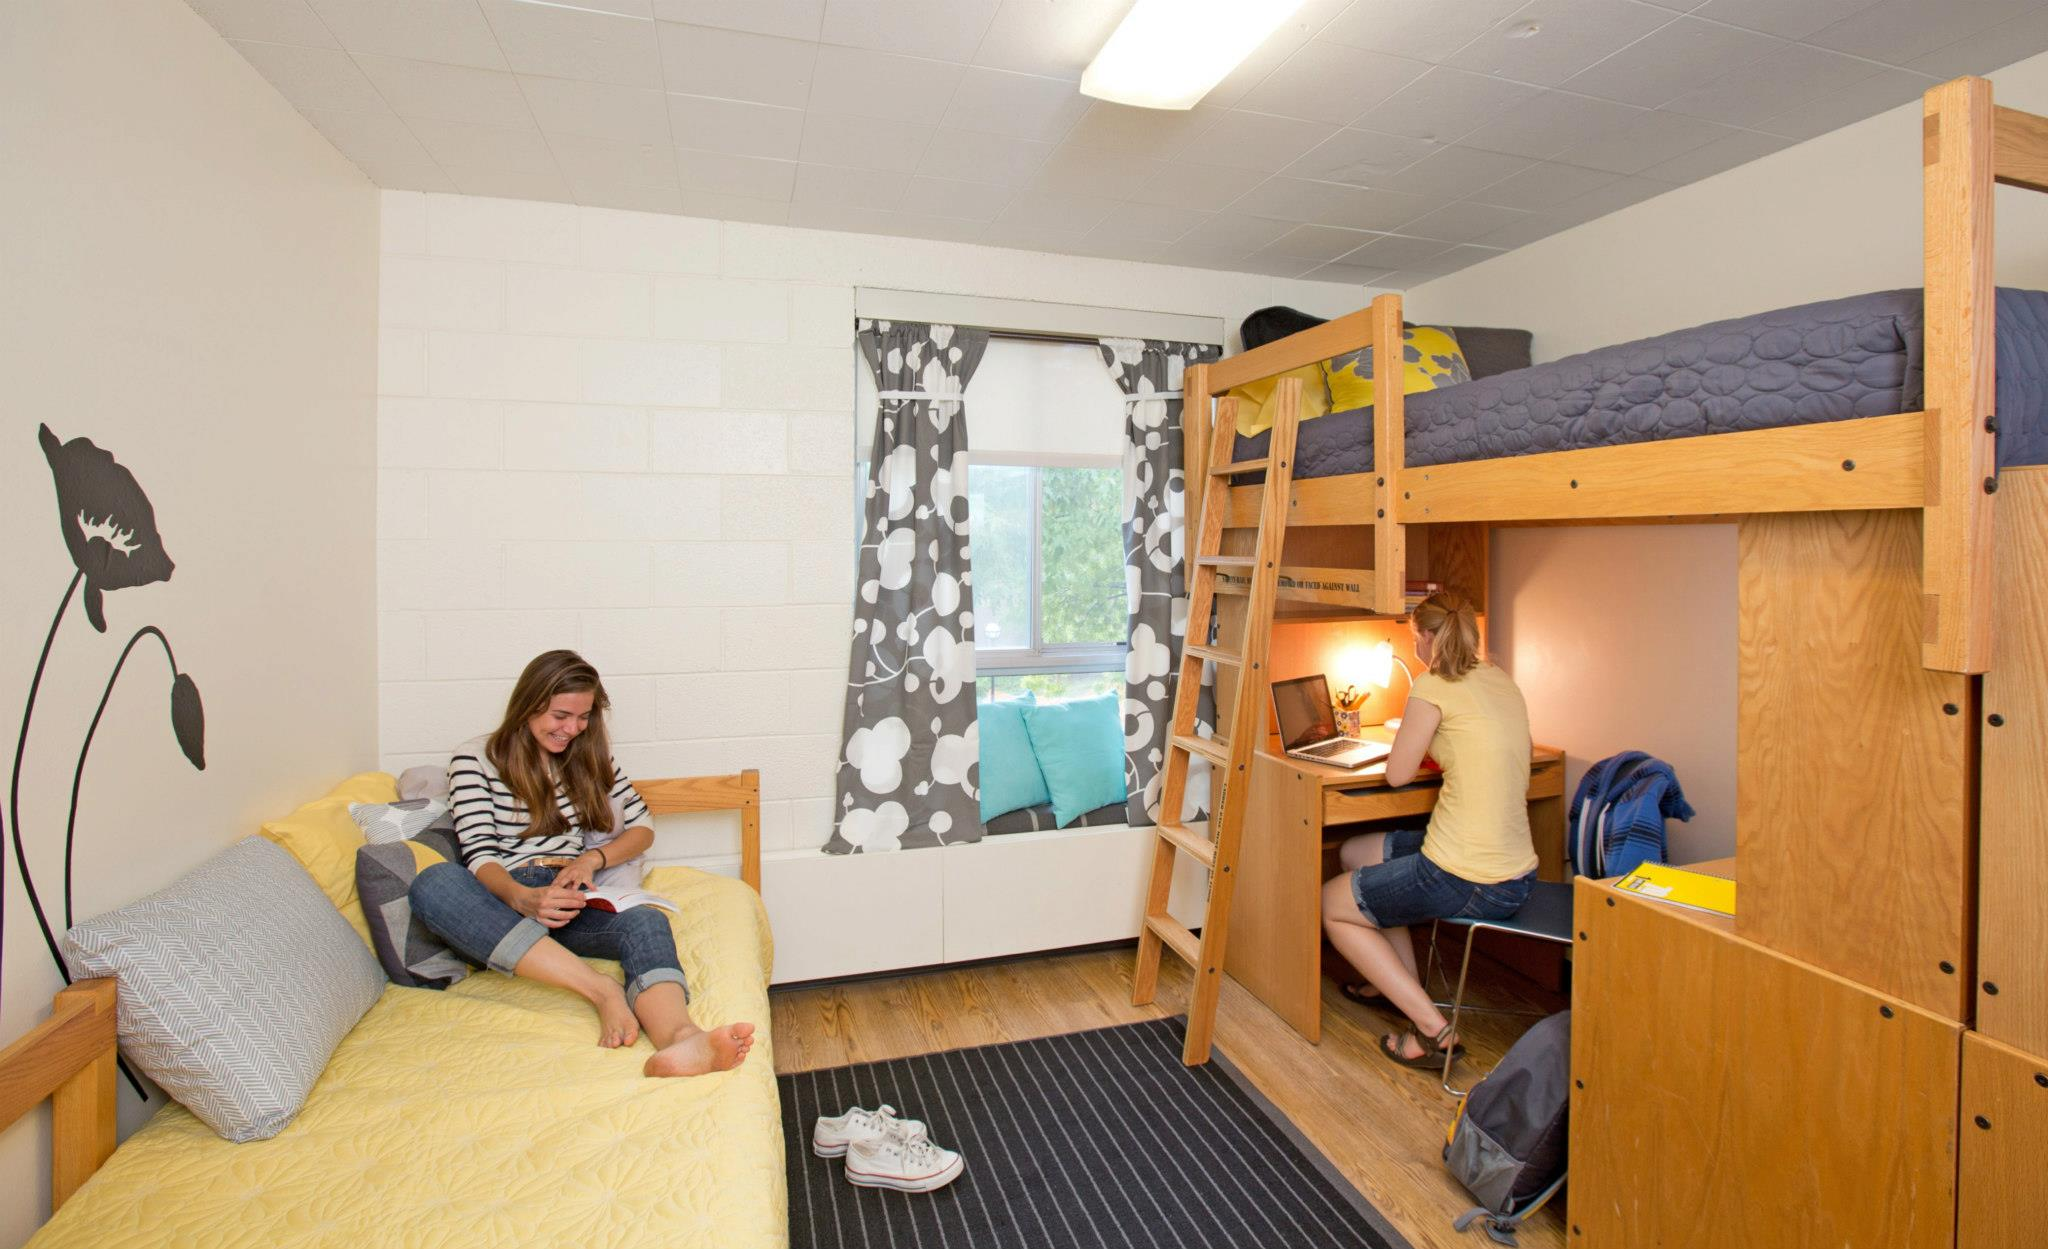 University Housing - Resident adviser and maintenance staff are available to call for assistance and maintenanceAmenities include study rooms, game rooms, music practice rooms, kitchens, etc.